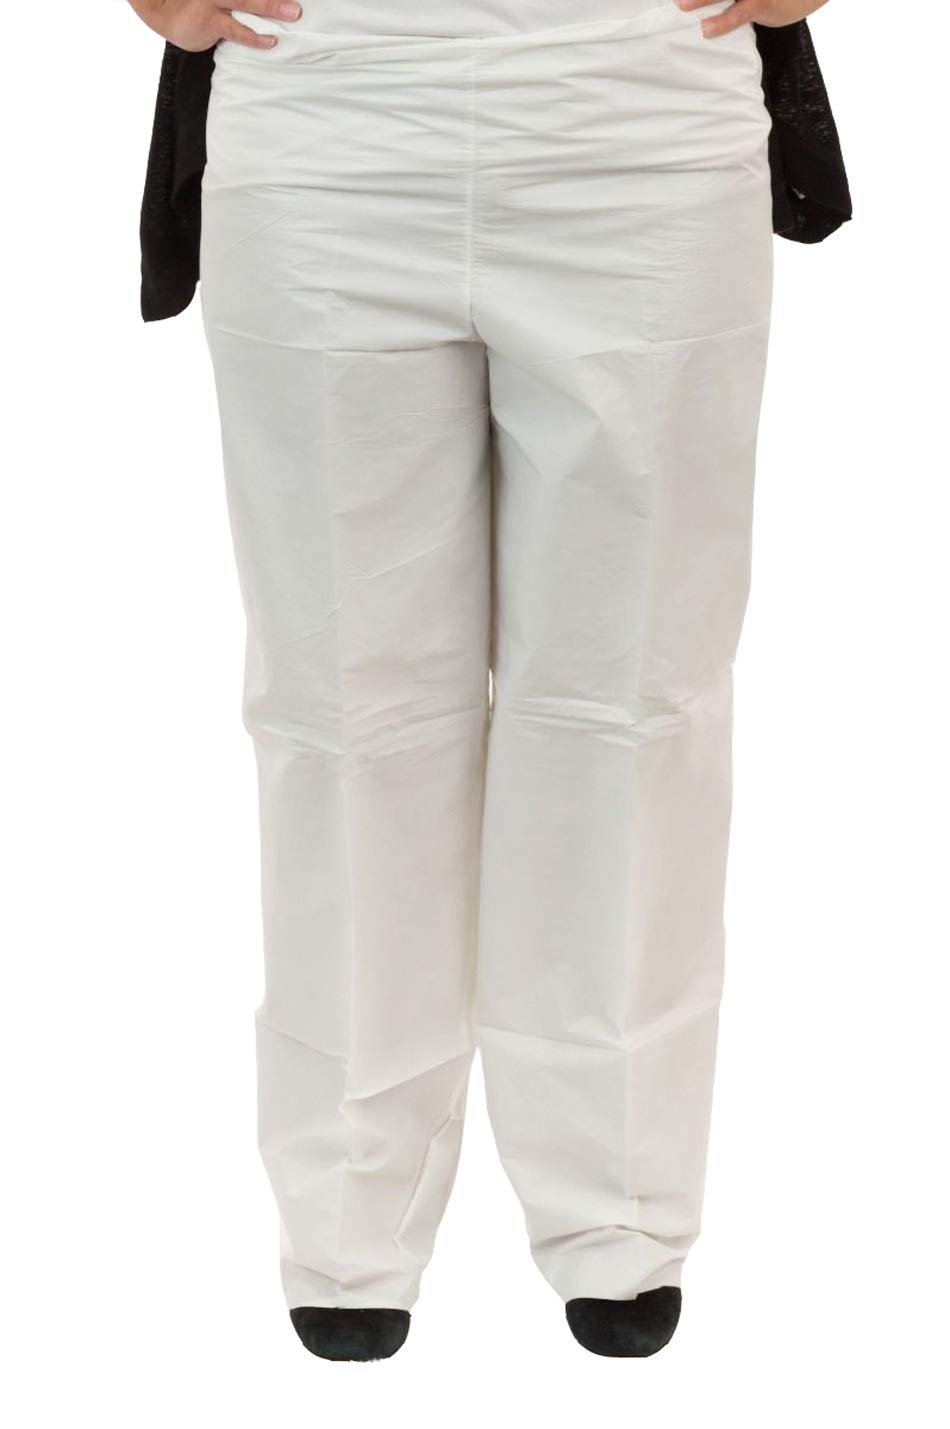 Microguard MP Microporous Pants (White)   Particulate & Splash Protection/Disposable Hazmat Pants with Elastic Waist for Paint and Particulates (Large, Case of 50)